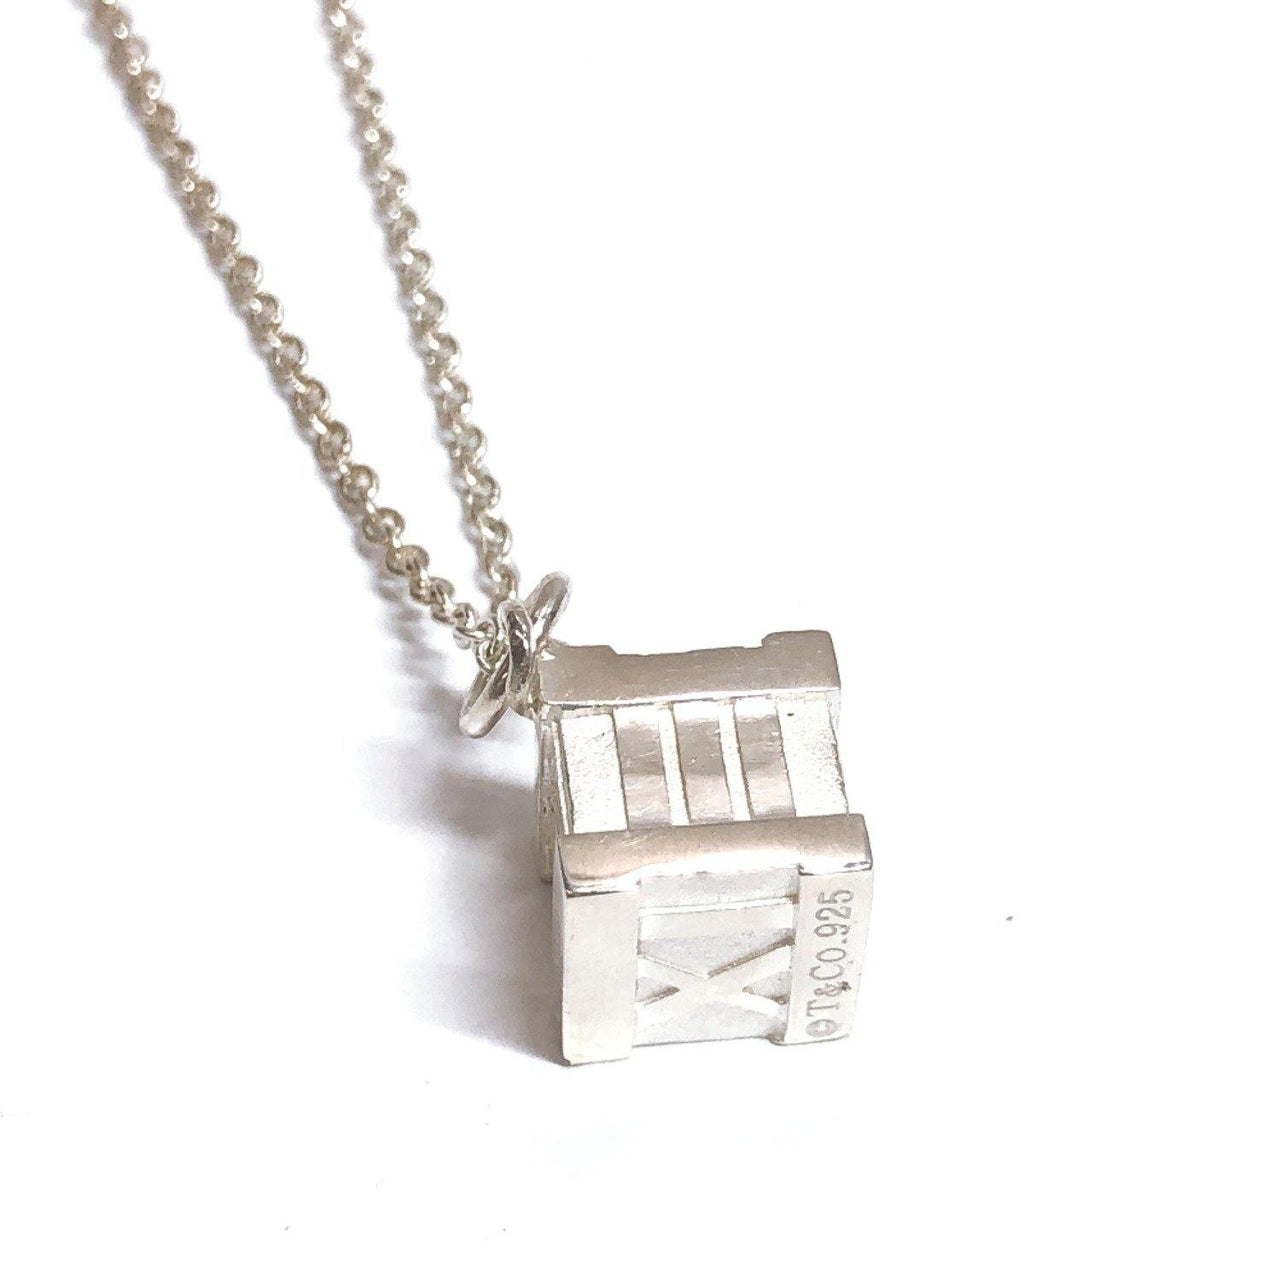 TIFFANY&Co. Necklace Atlas cube Silver925 Silver Women Used - JP-BRANDS.com